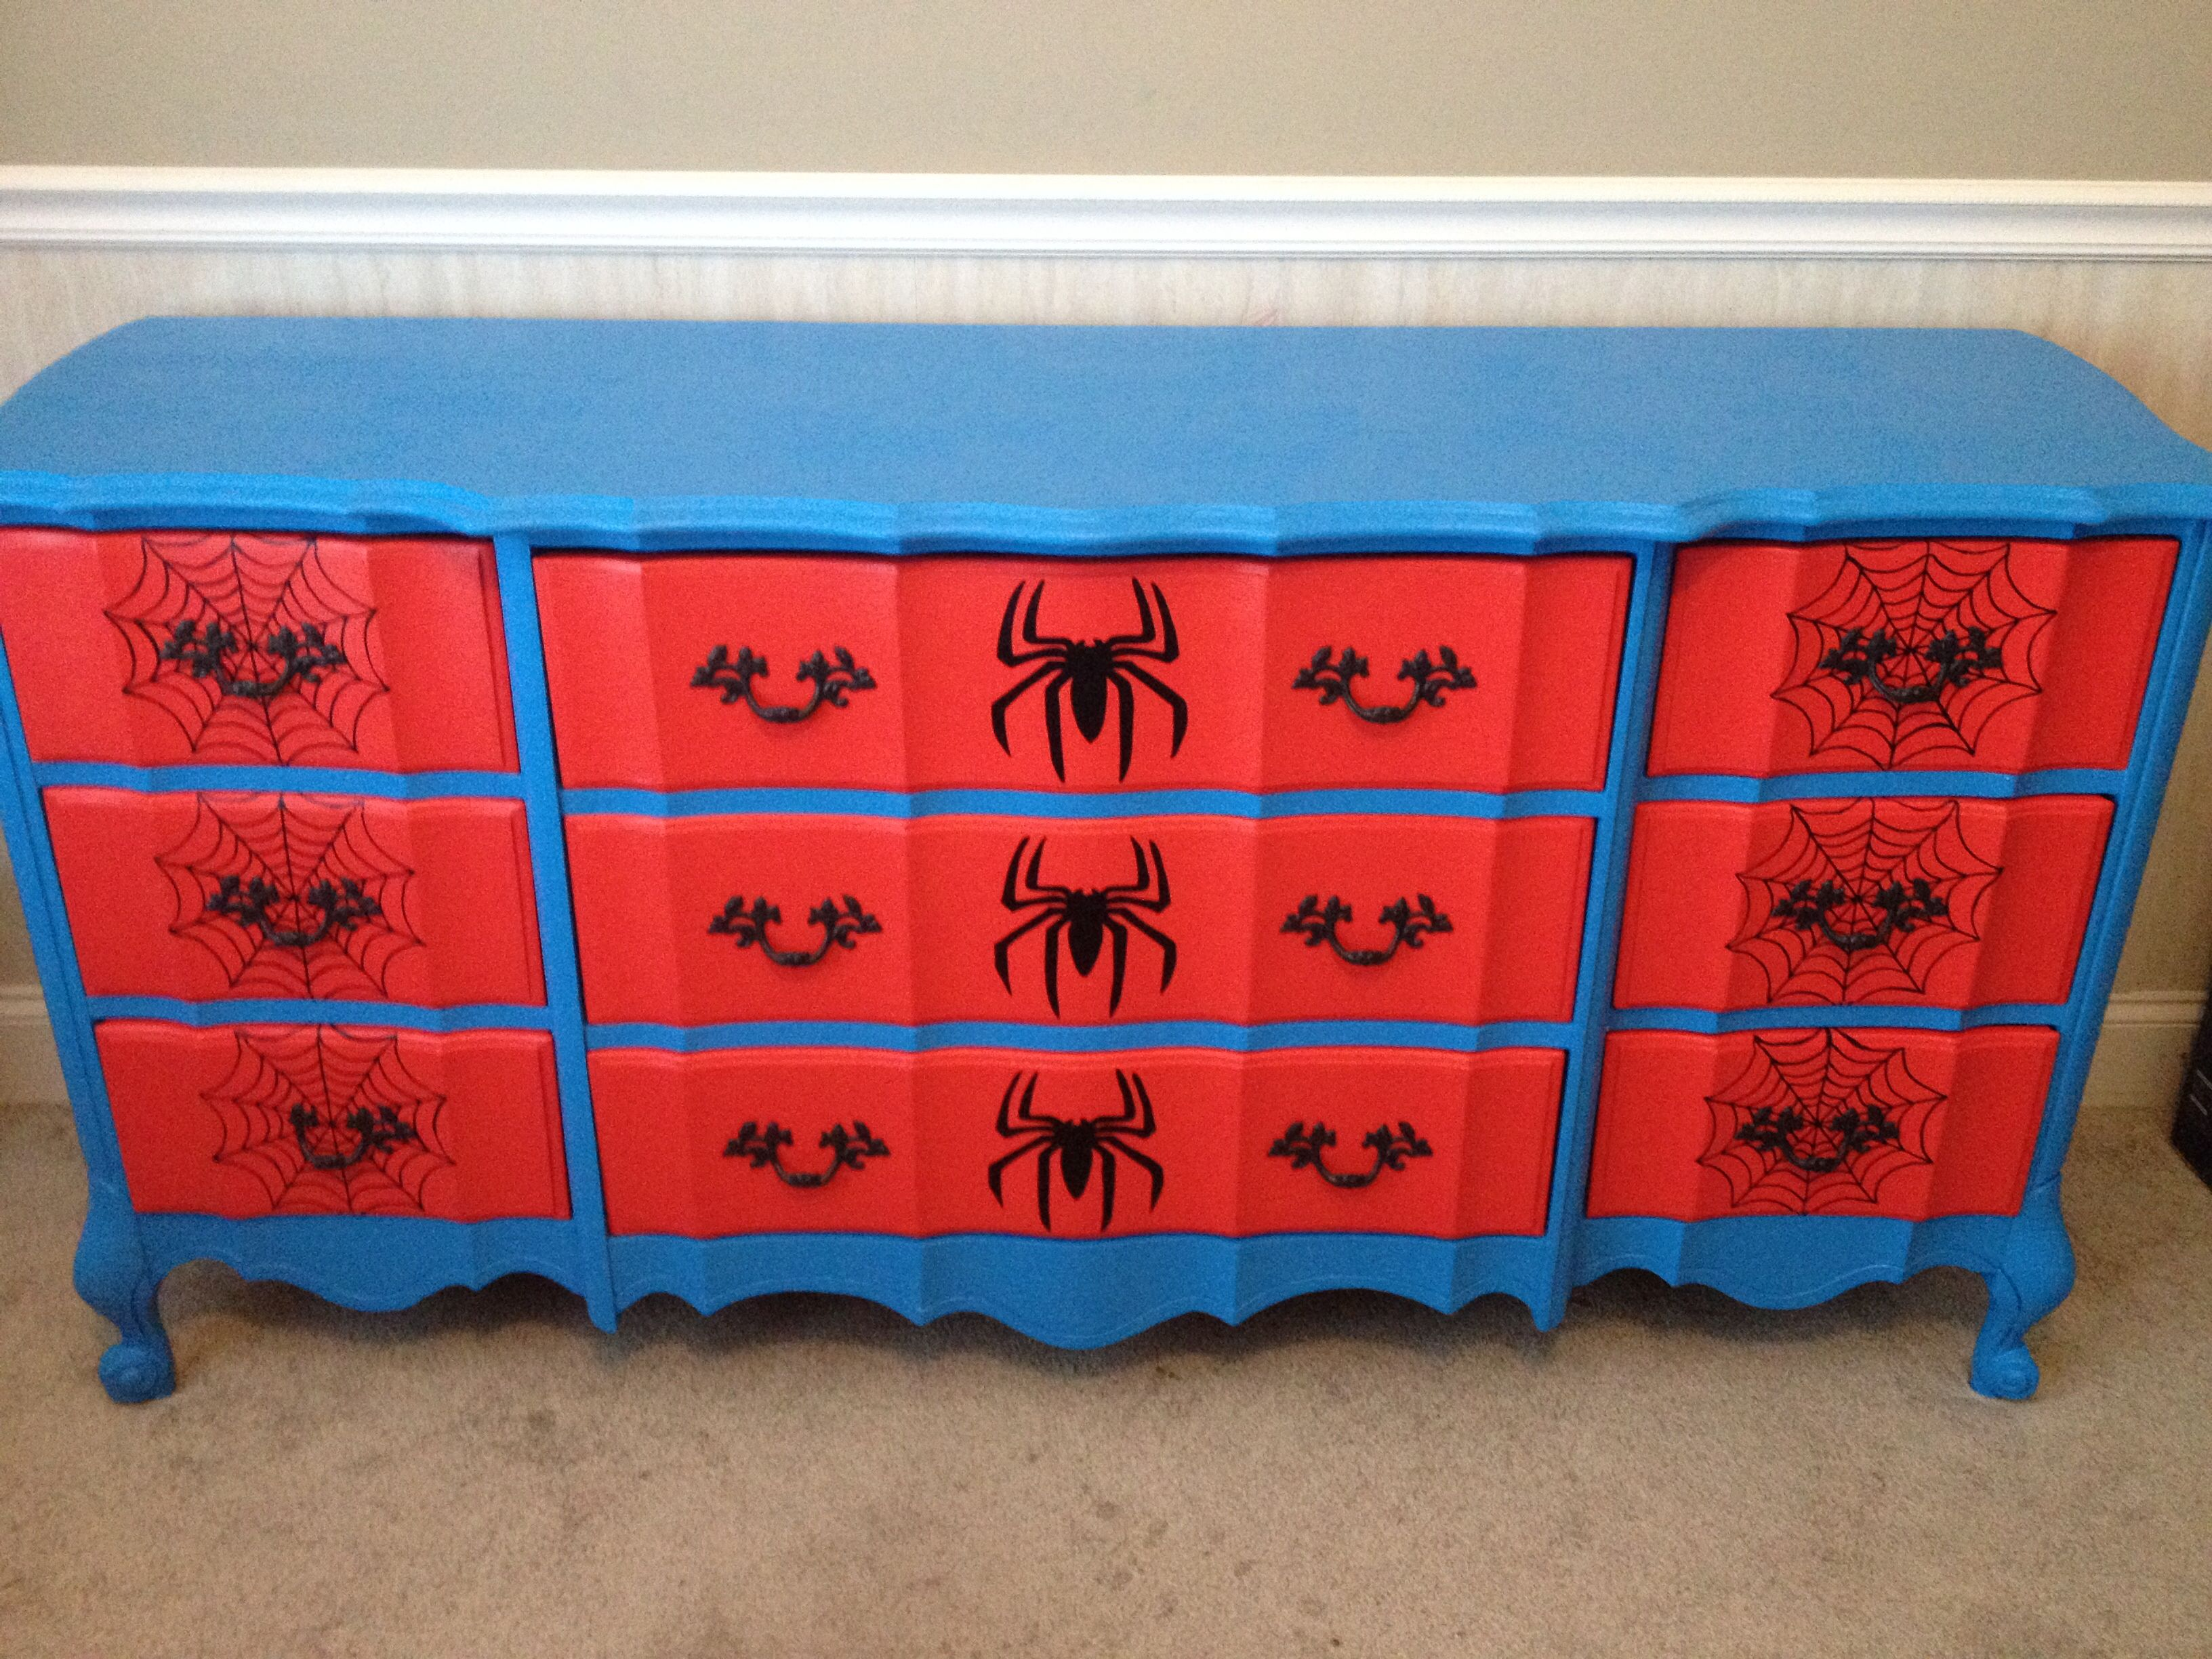 Spiderman Dresser I Painted For Little Man's Room Furniture Pleasing Spiderman Bedroom Furniture Decorating Design